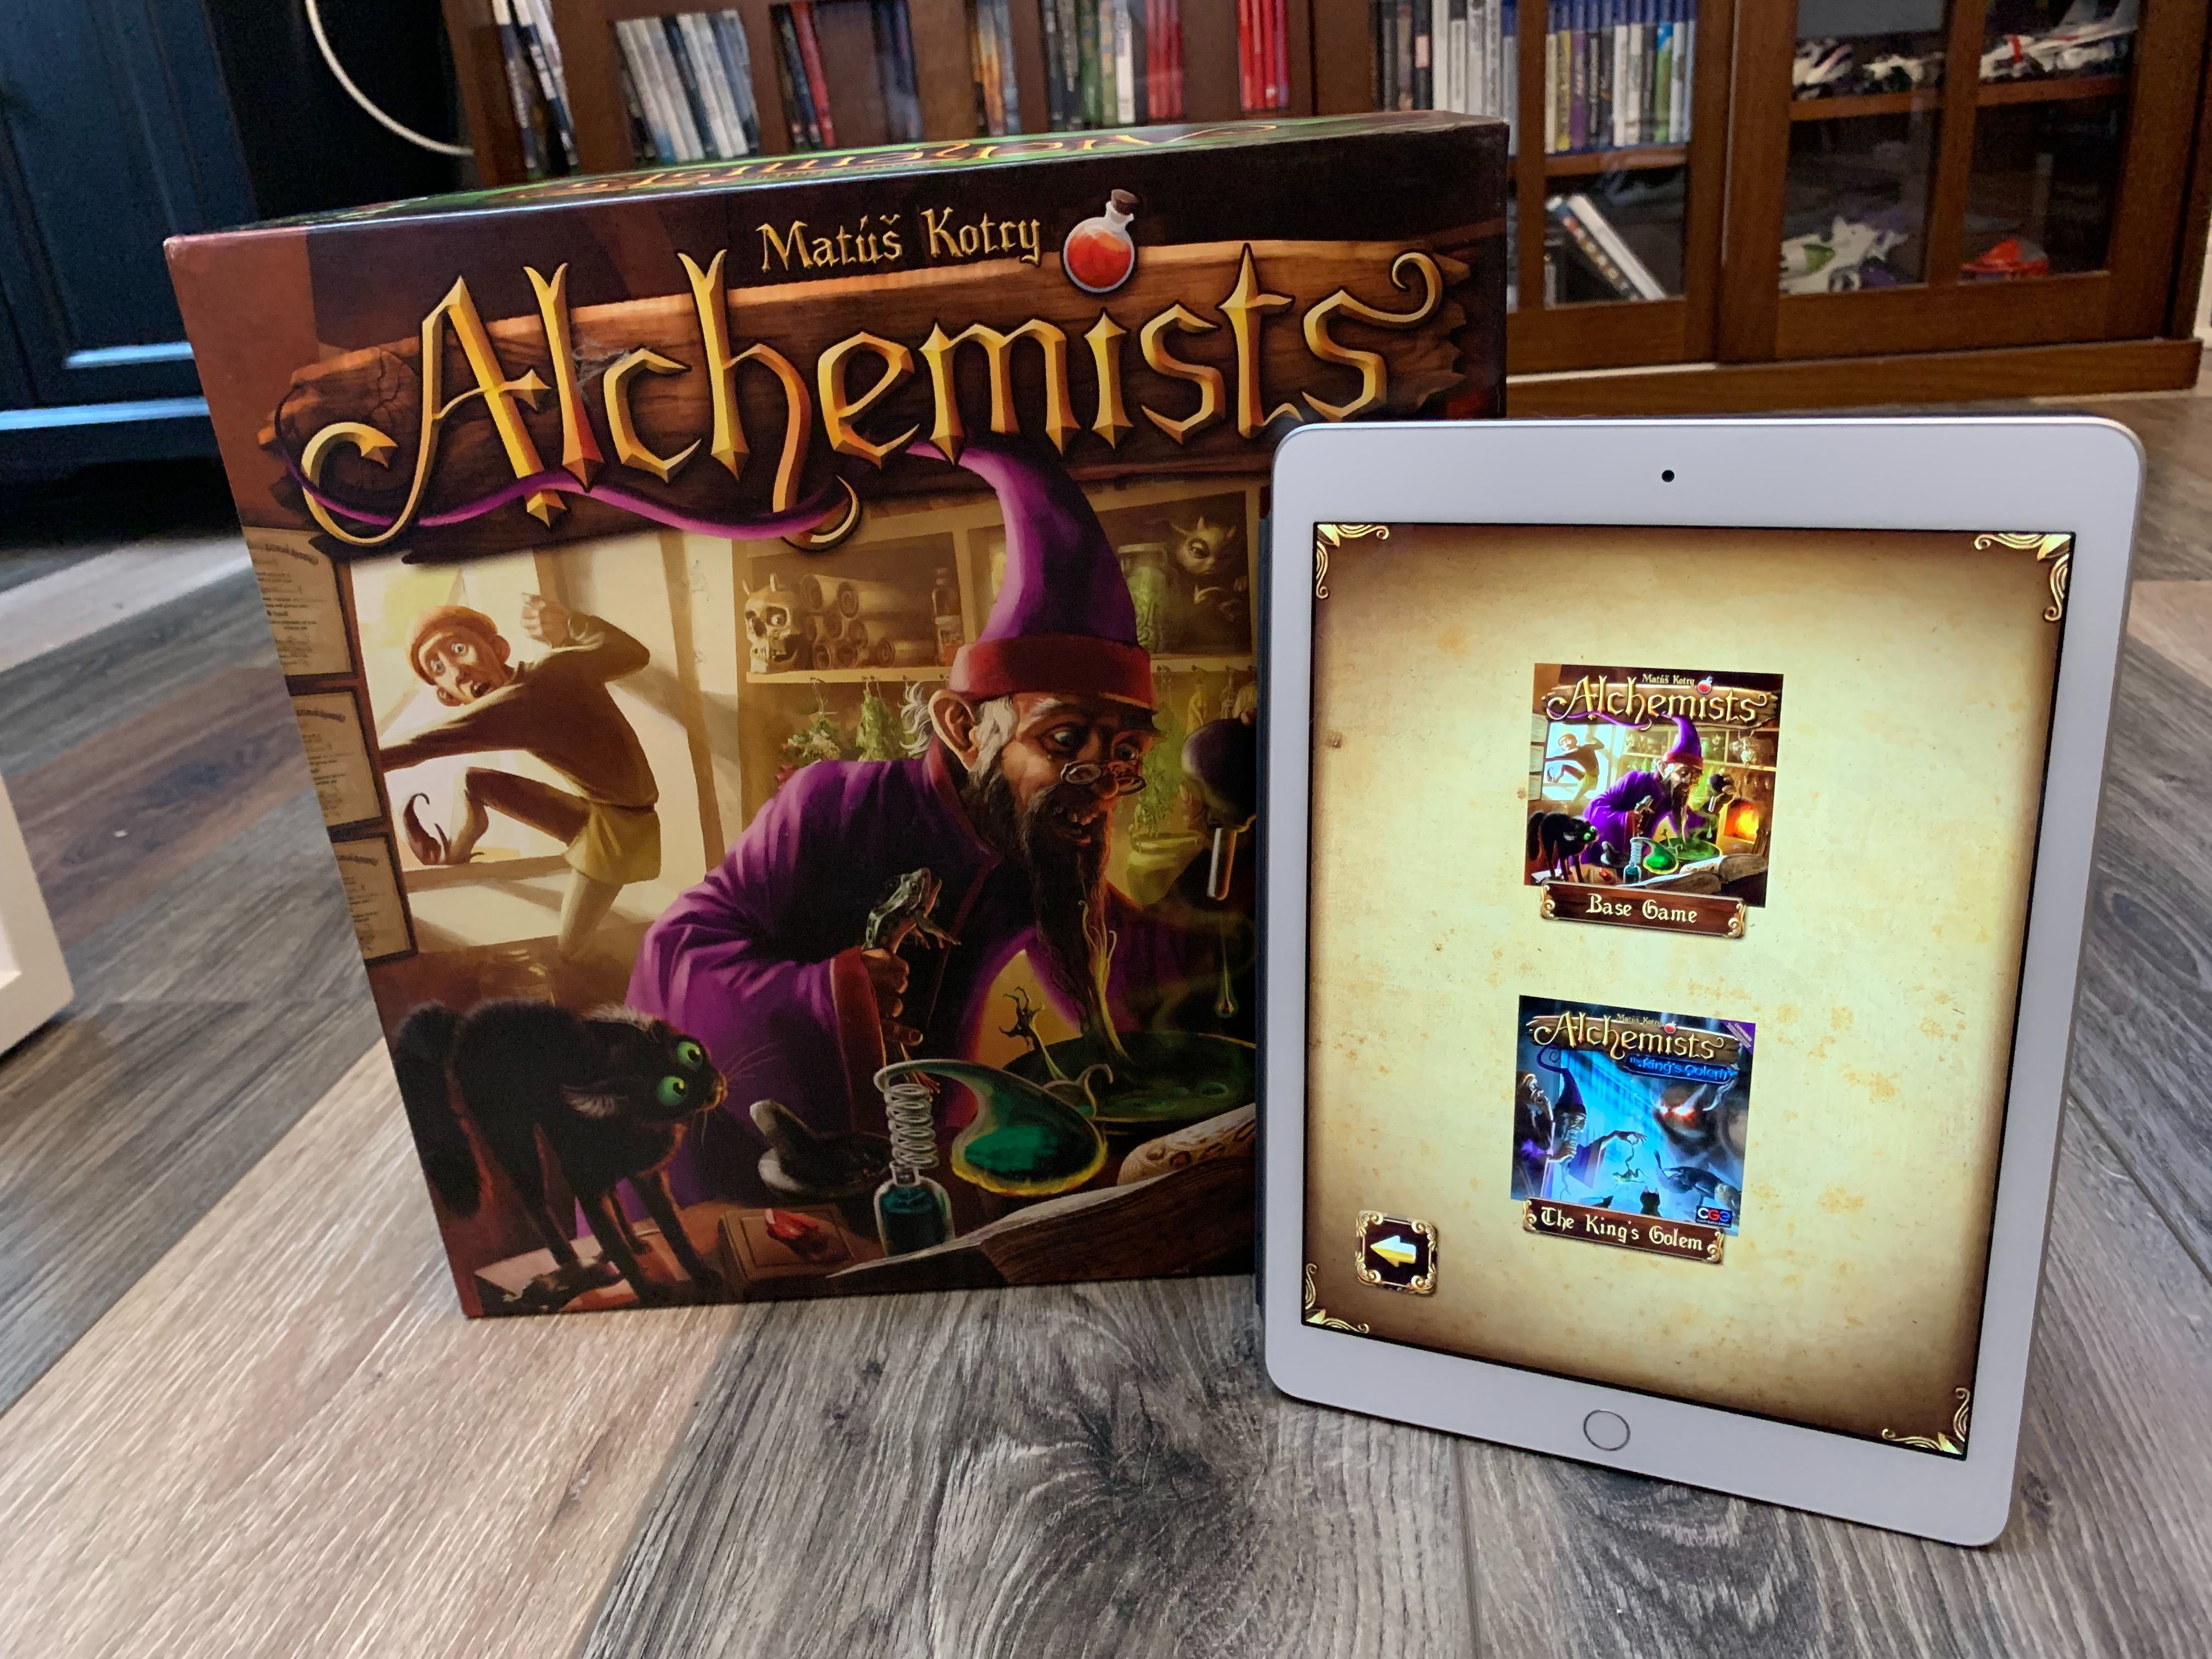 The companion app for Alchemists is built right into the game. Don't experiment without it!